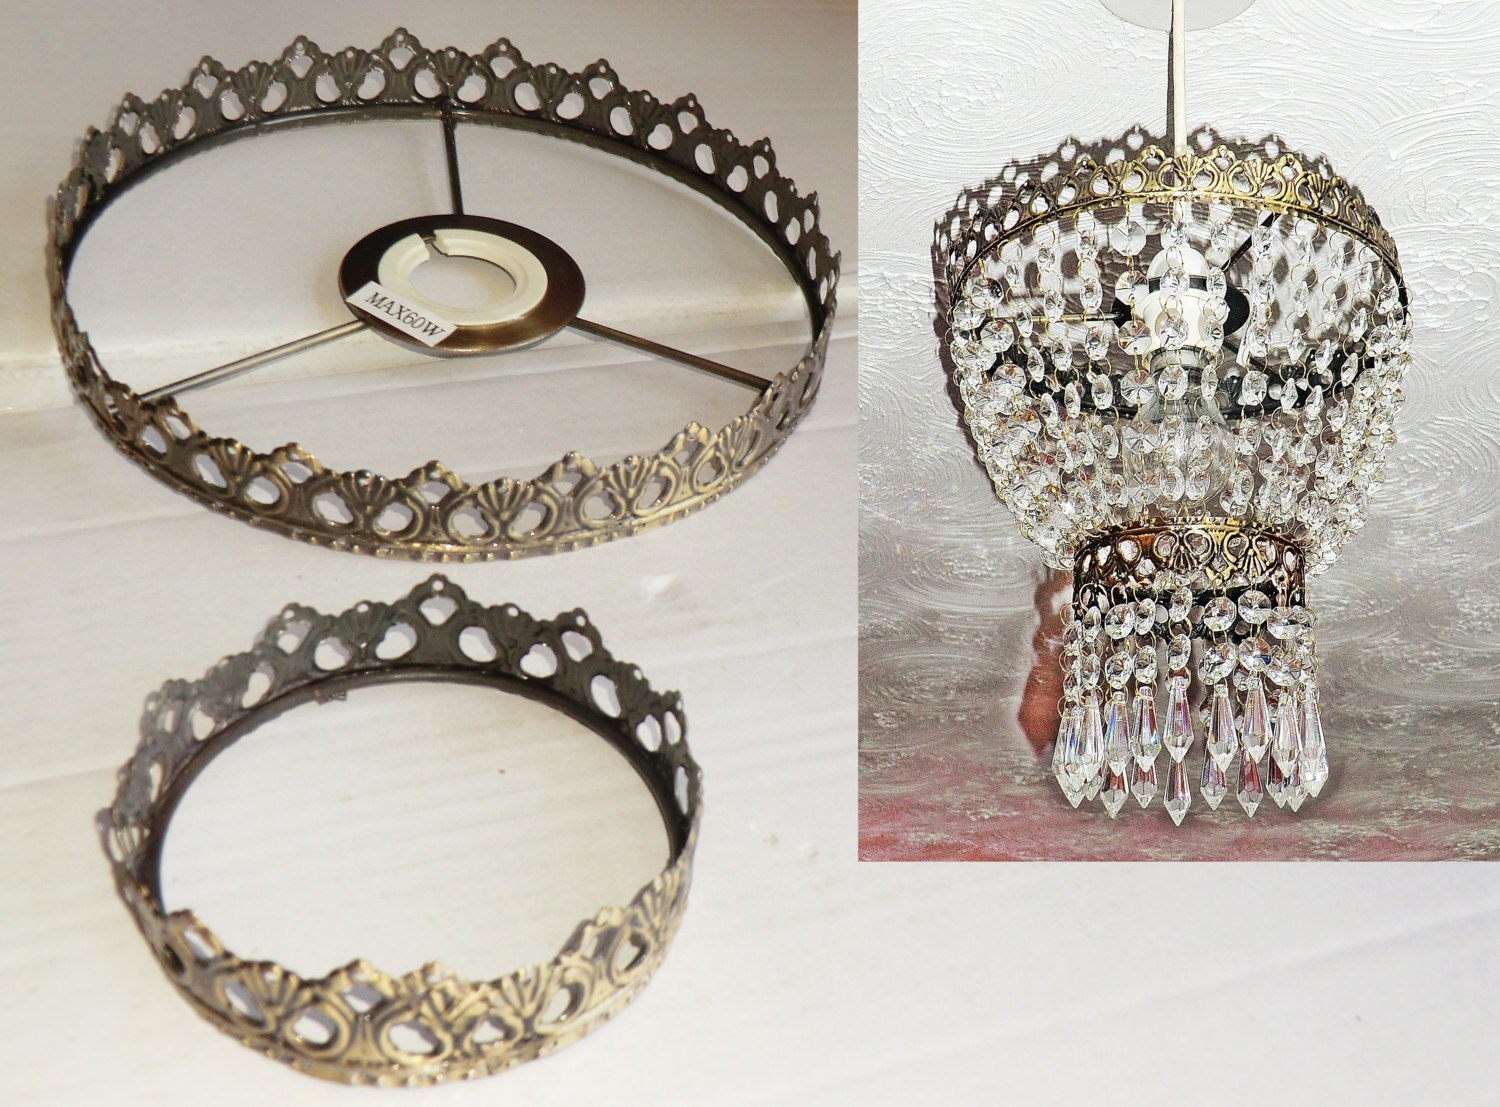 Two tier chandelier metal frame no drops make your own chandelier two tier chandelier metal frame no drops make your own chandelier light shade kit pendant lamp or wedding cake stand decoration antique look aloadofball Image collections